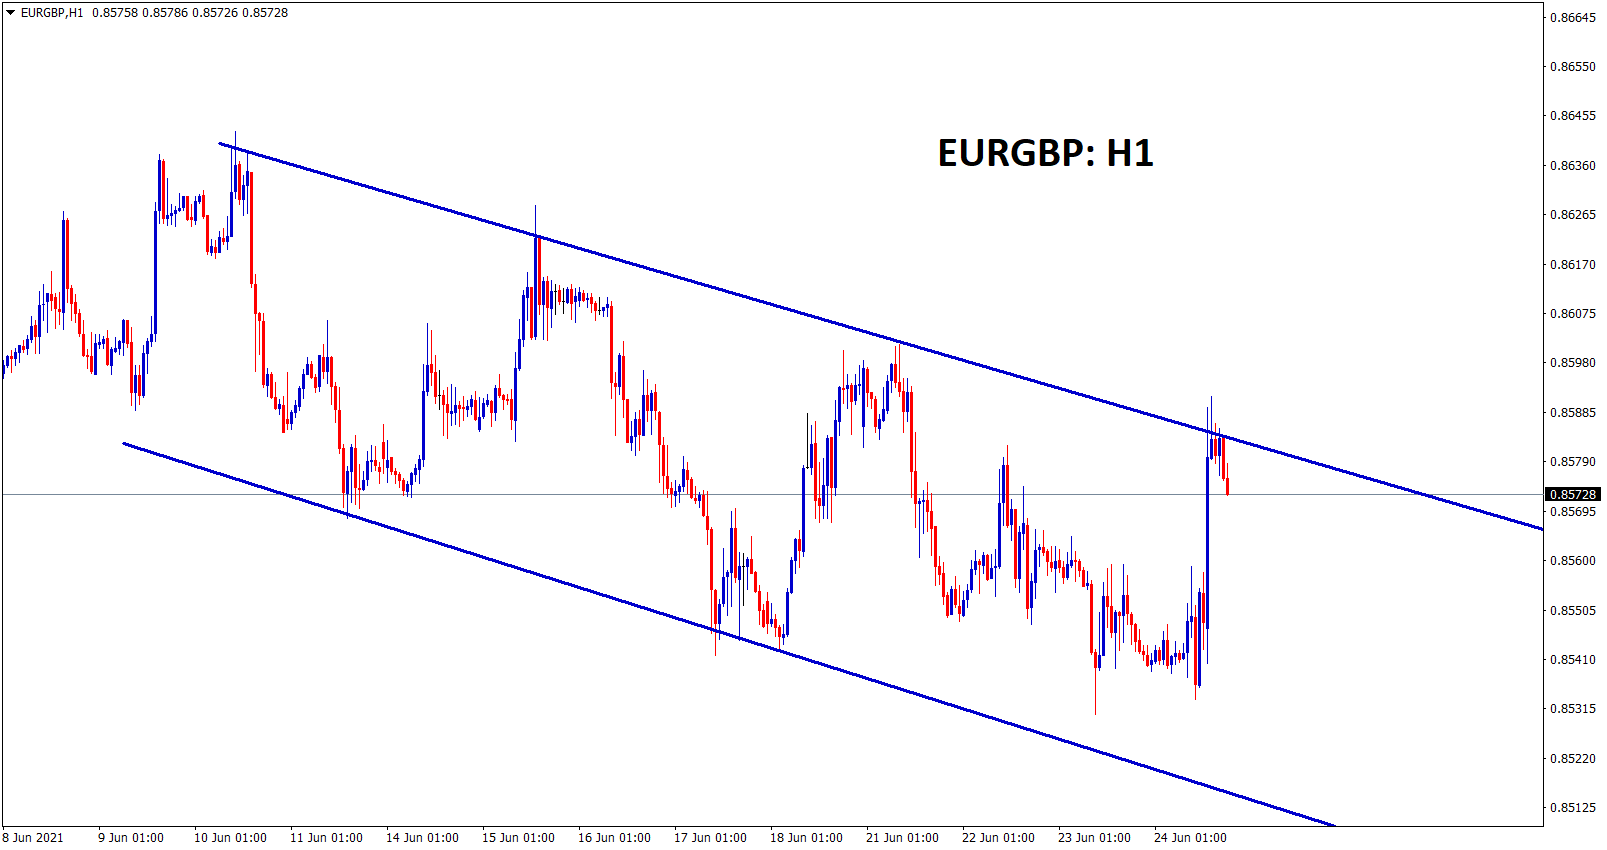 EURGBP moving in a descending channel price ranges